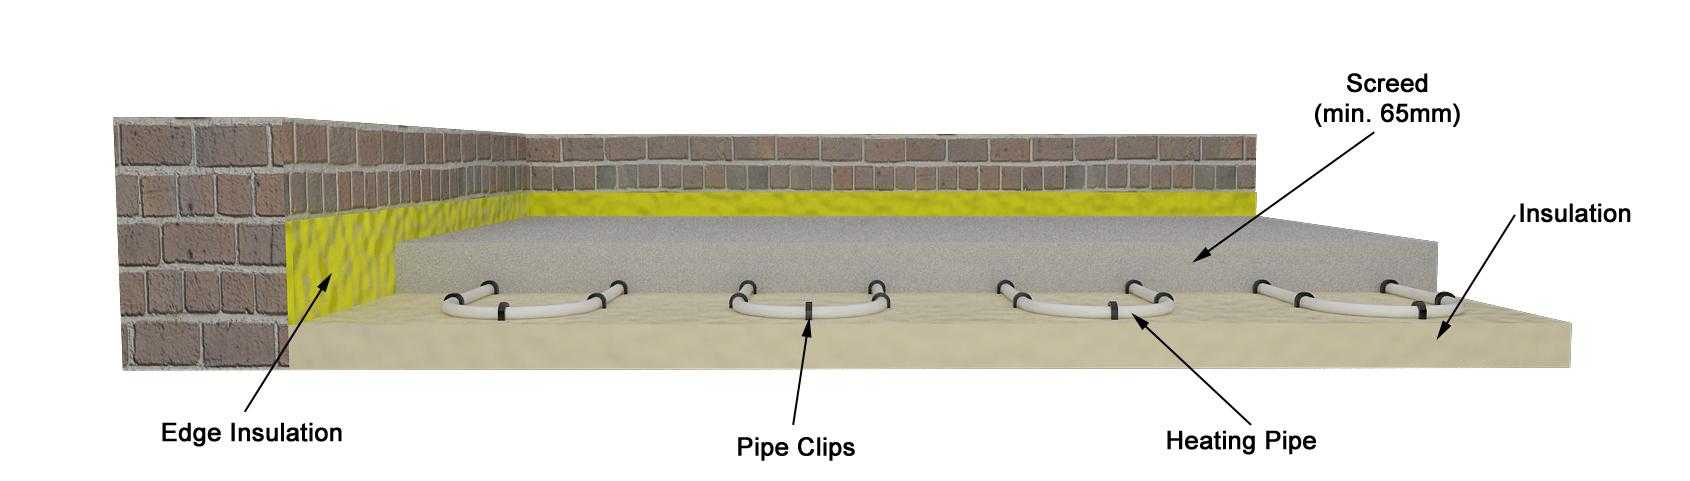 In-screed Cross Section